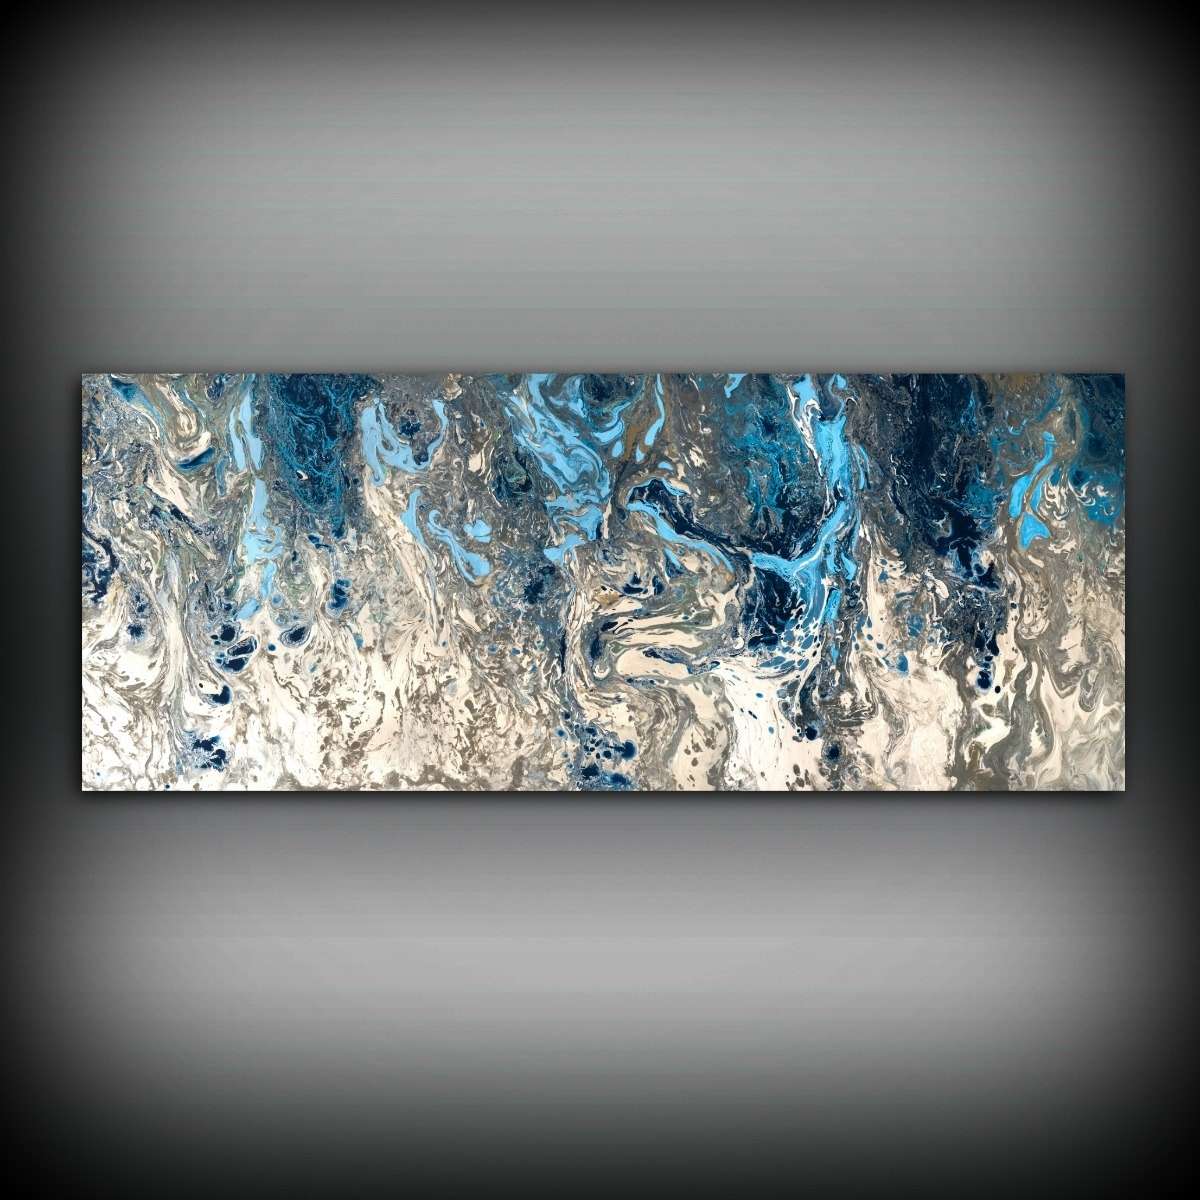 Original Painting, Navy Blue And Gray Painting Abstract Painting In Recent Original Abstract Wall Art (View 17 of 20)